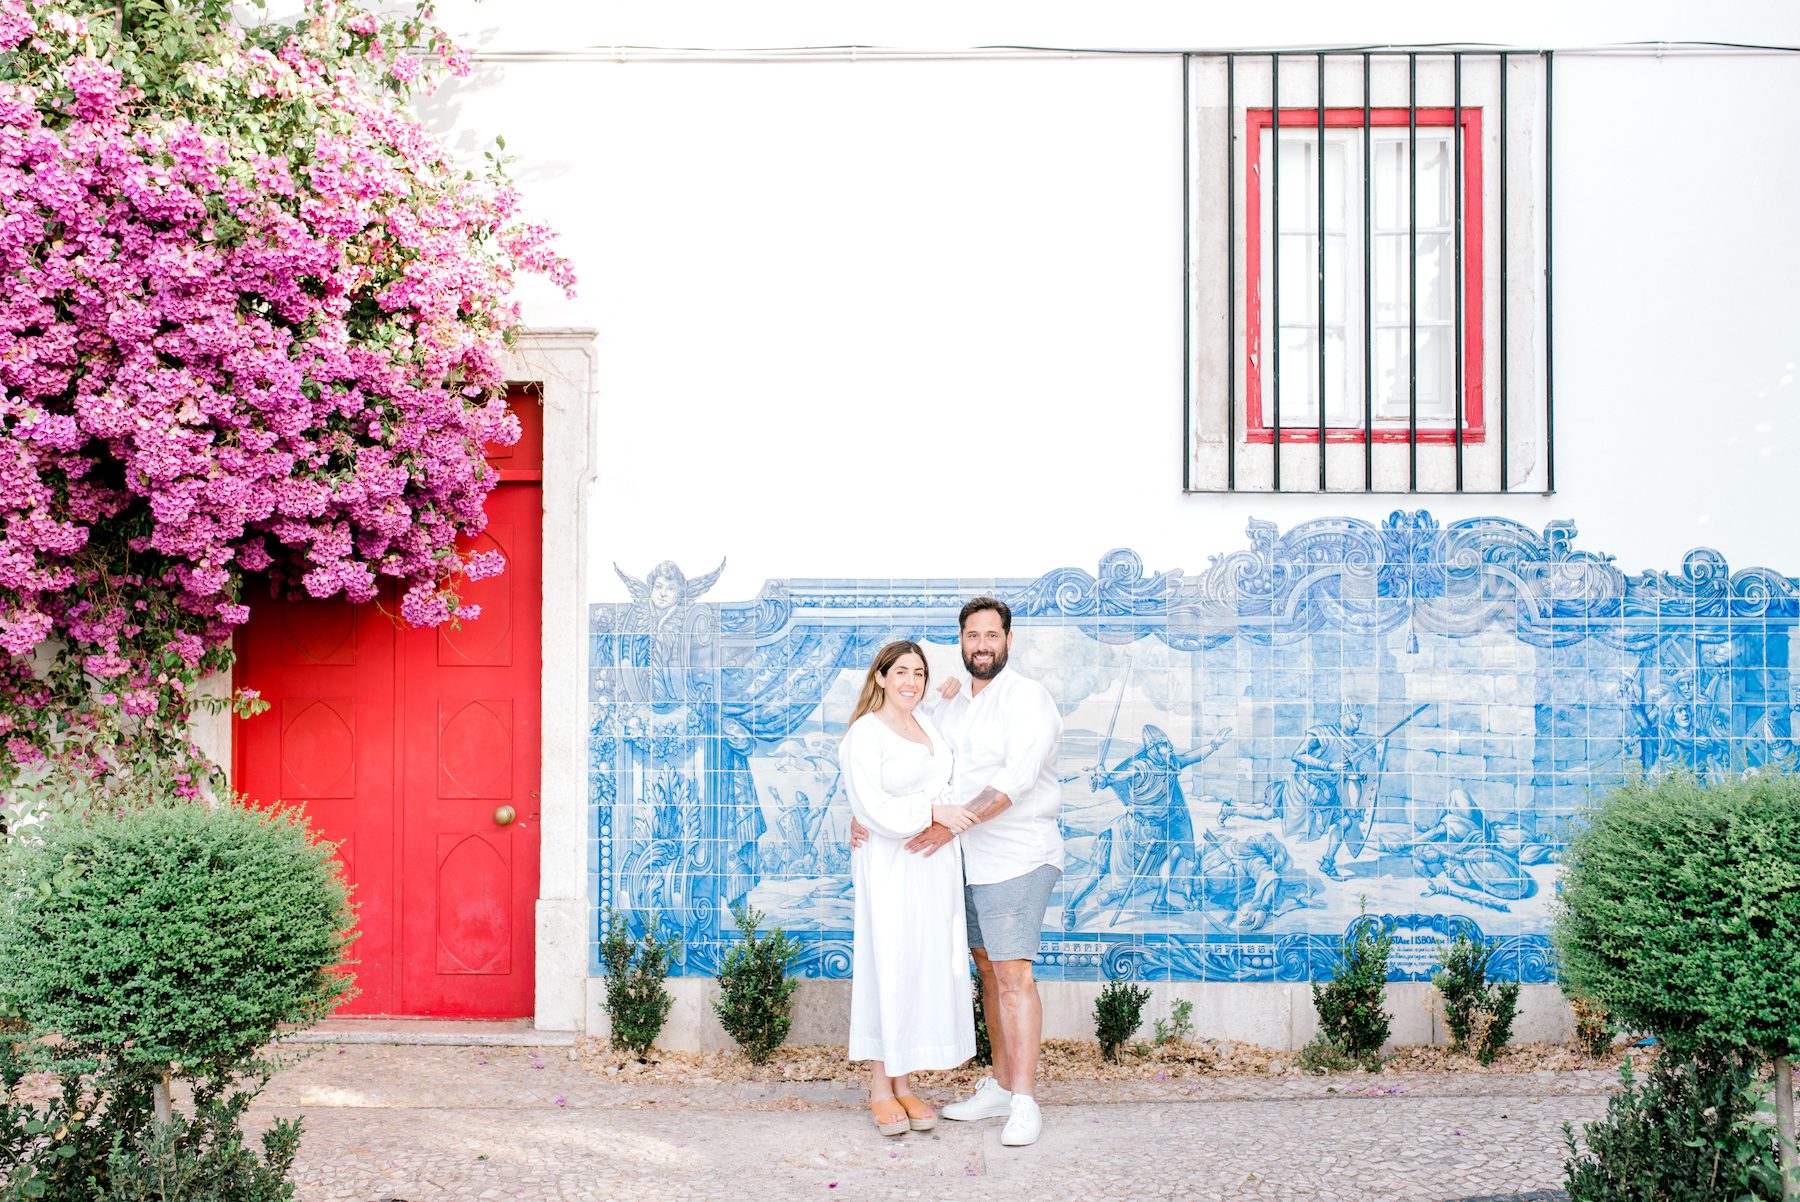 pregnant couple standing in front of a colourful building in Lisbon, Portugal